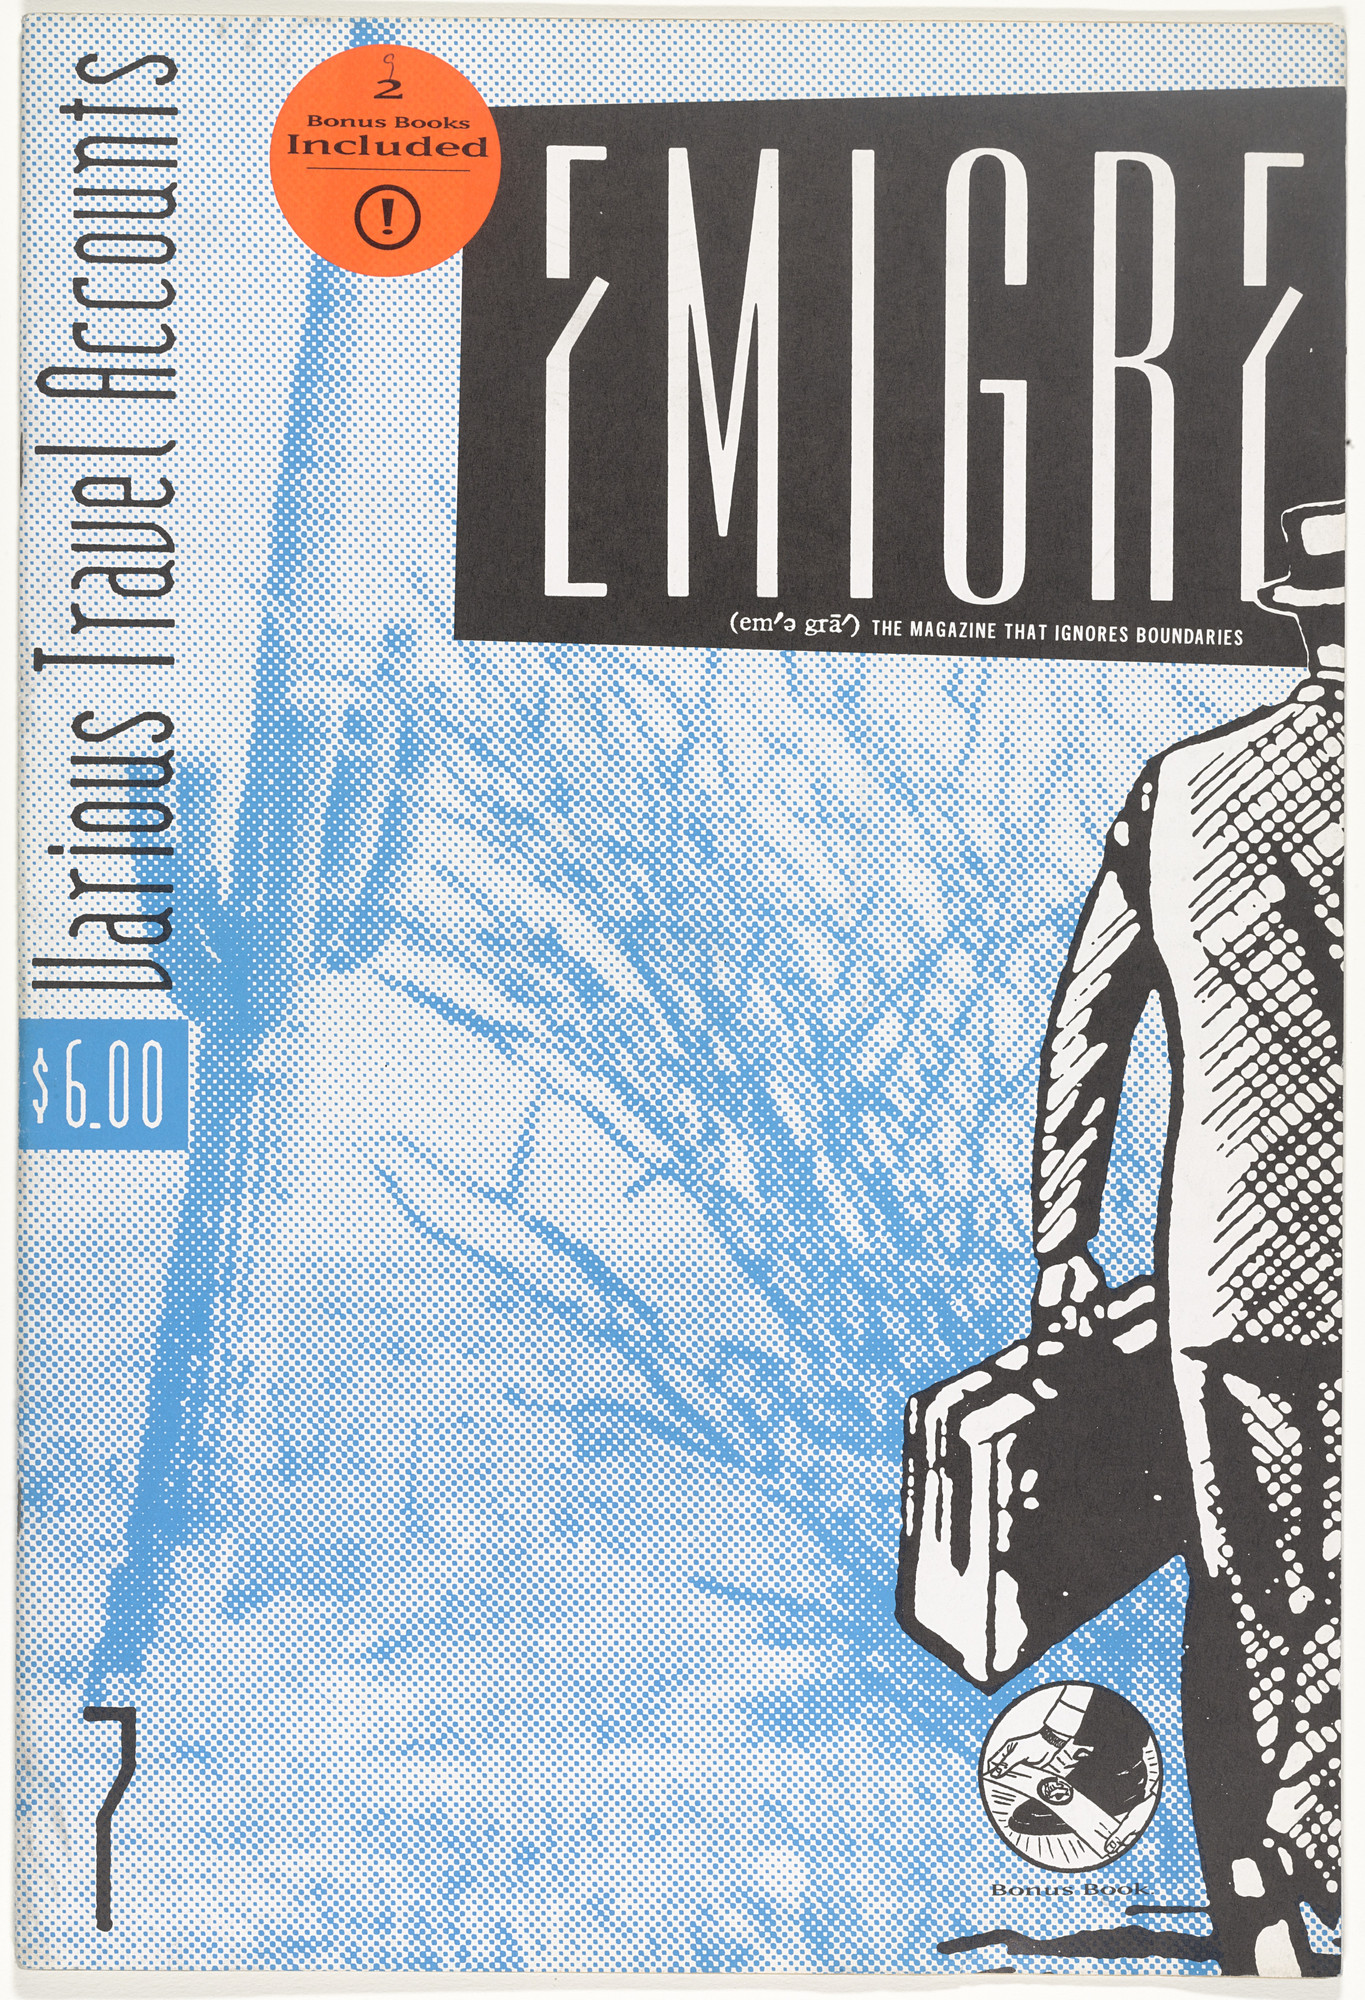 Emigre Inc., Rudy VanderLans, Zuzana Licko. Emigre 7, Various Travel Accounts. 1987